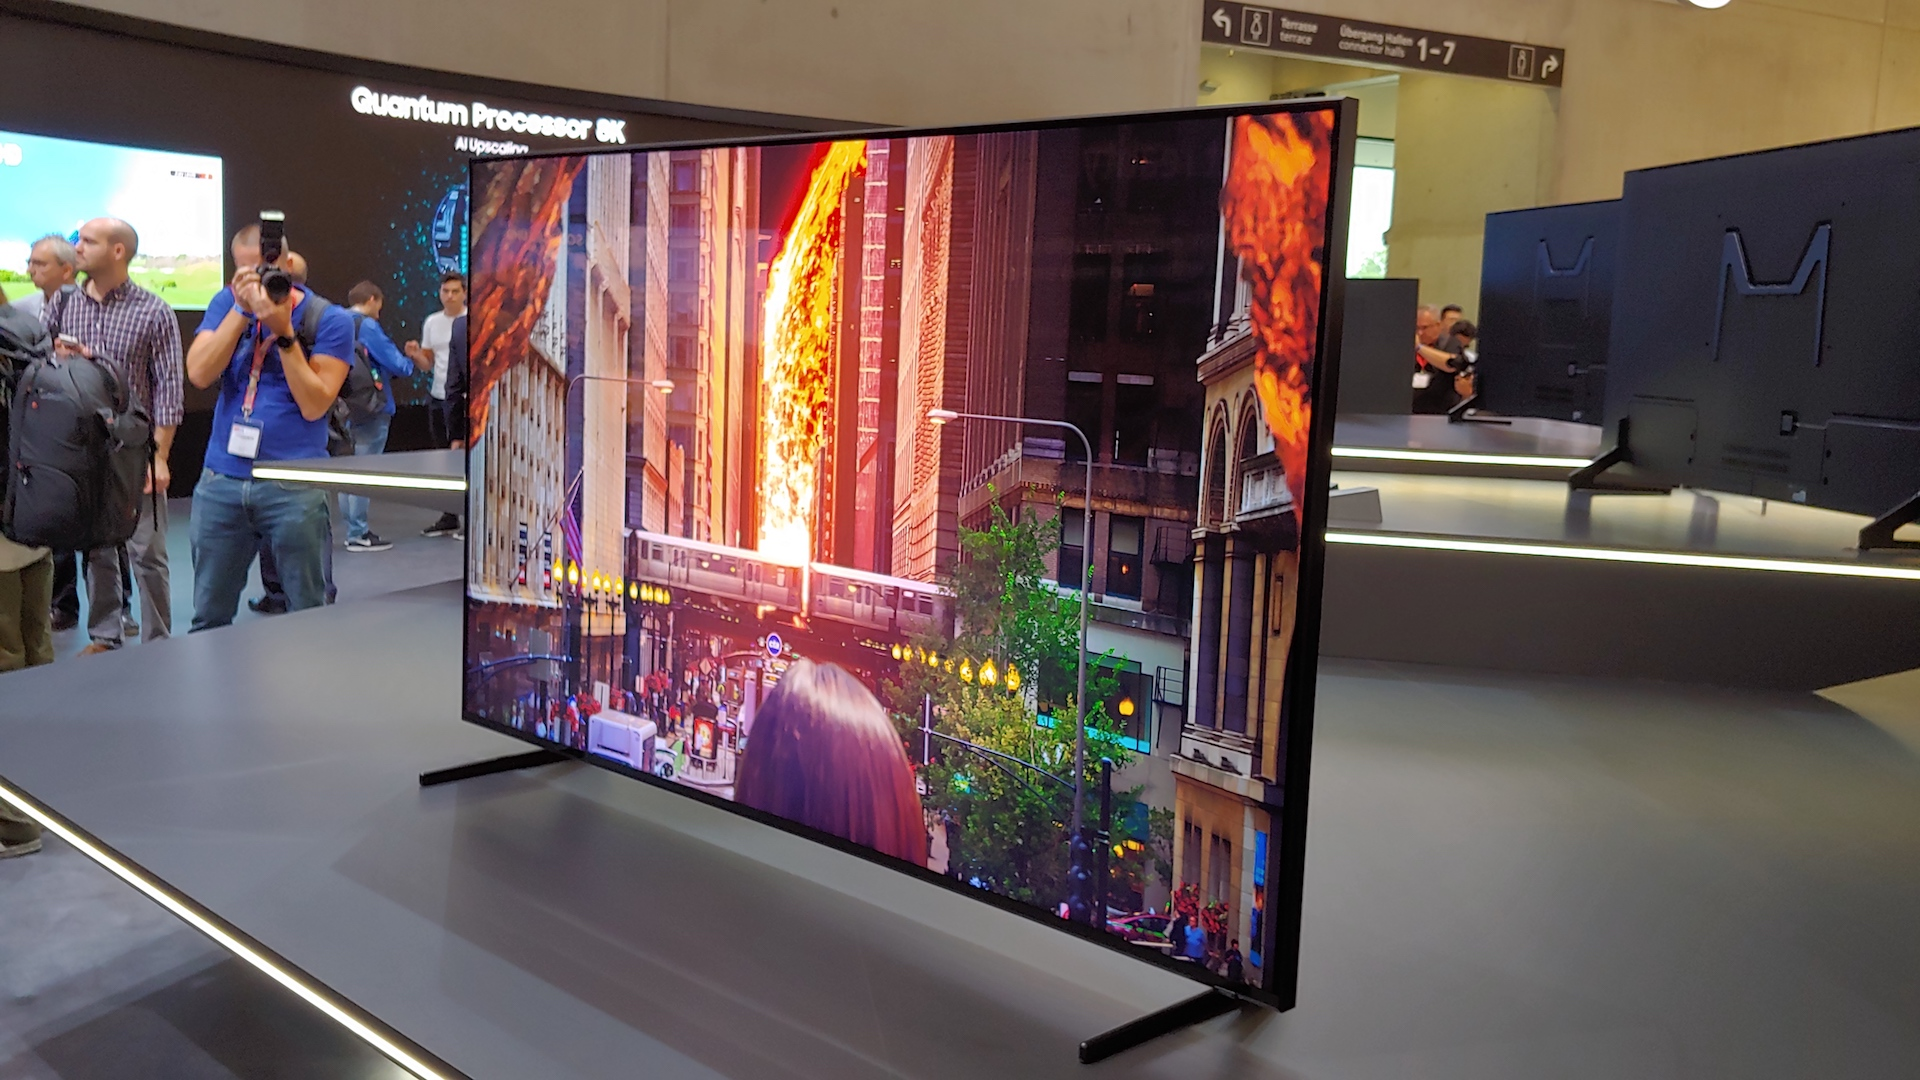 Samsung S 8k Qled Tv Costs 4x More Than The Best 4k Tv On The Market Techradar